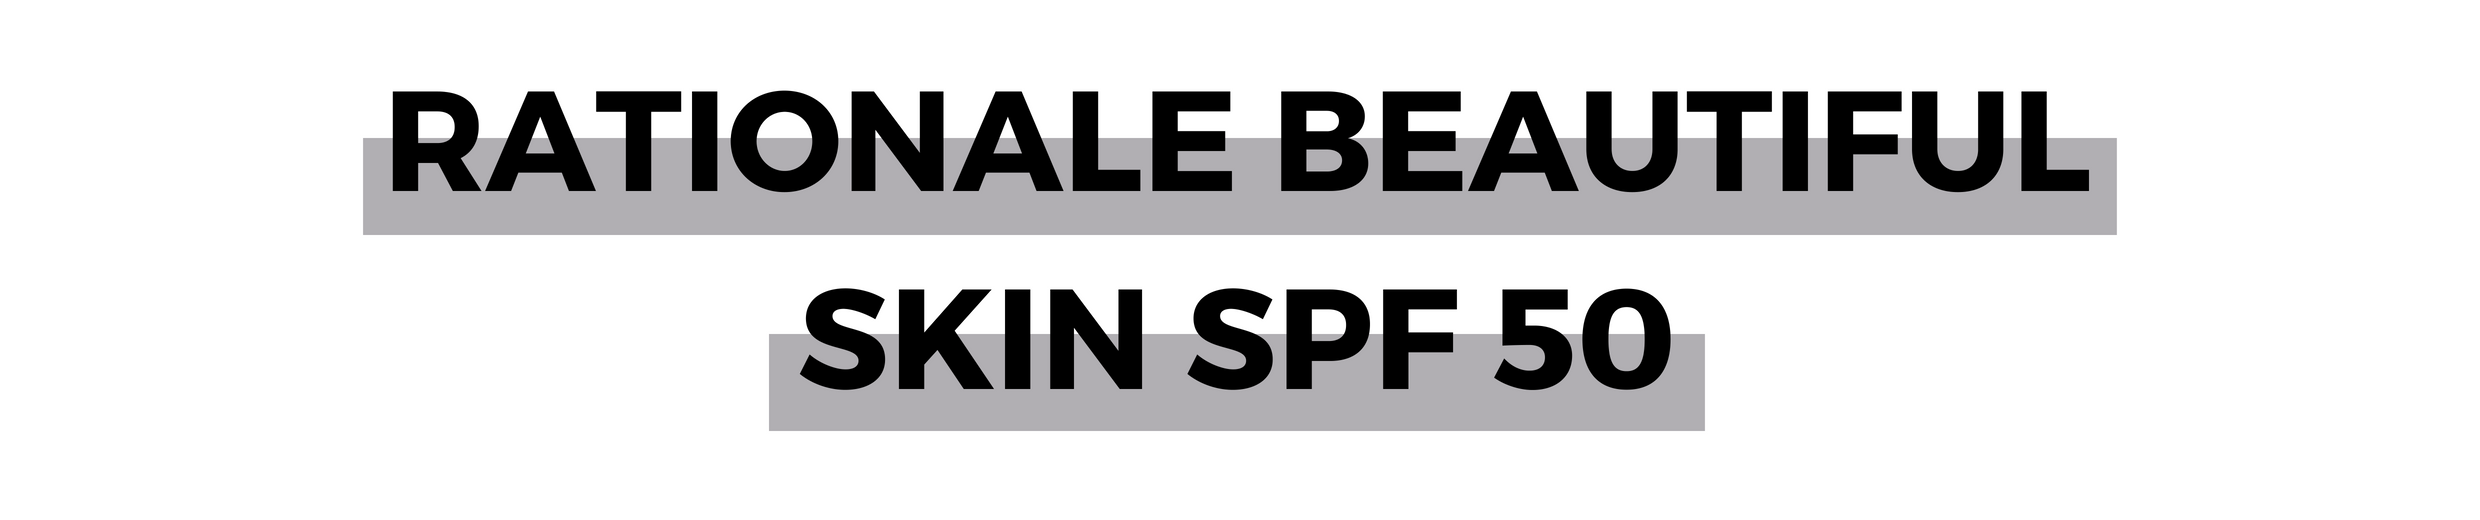 RATIONALE BEAUTIFUL SKIN SPF 50.png